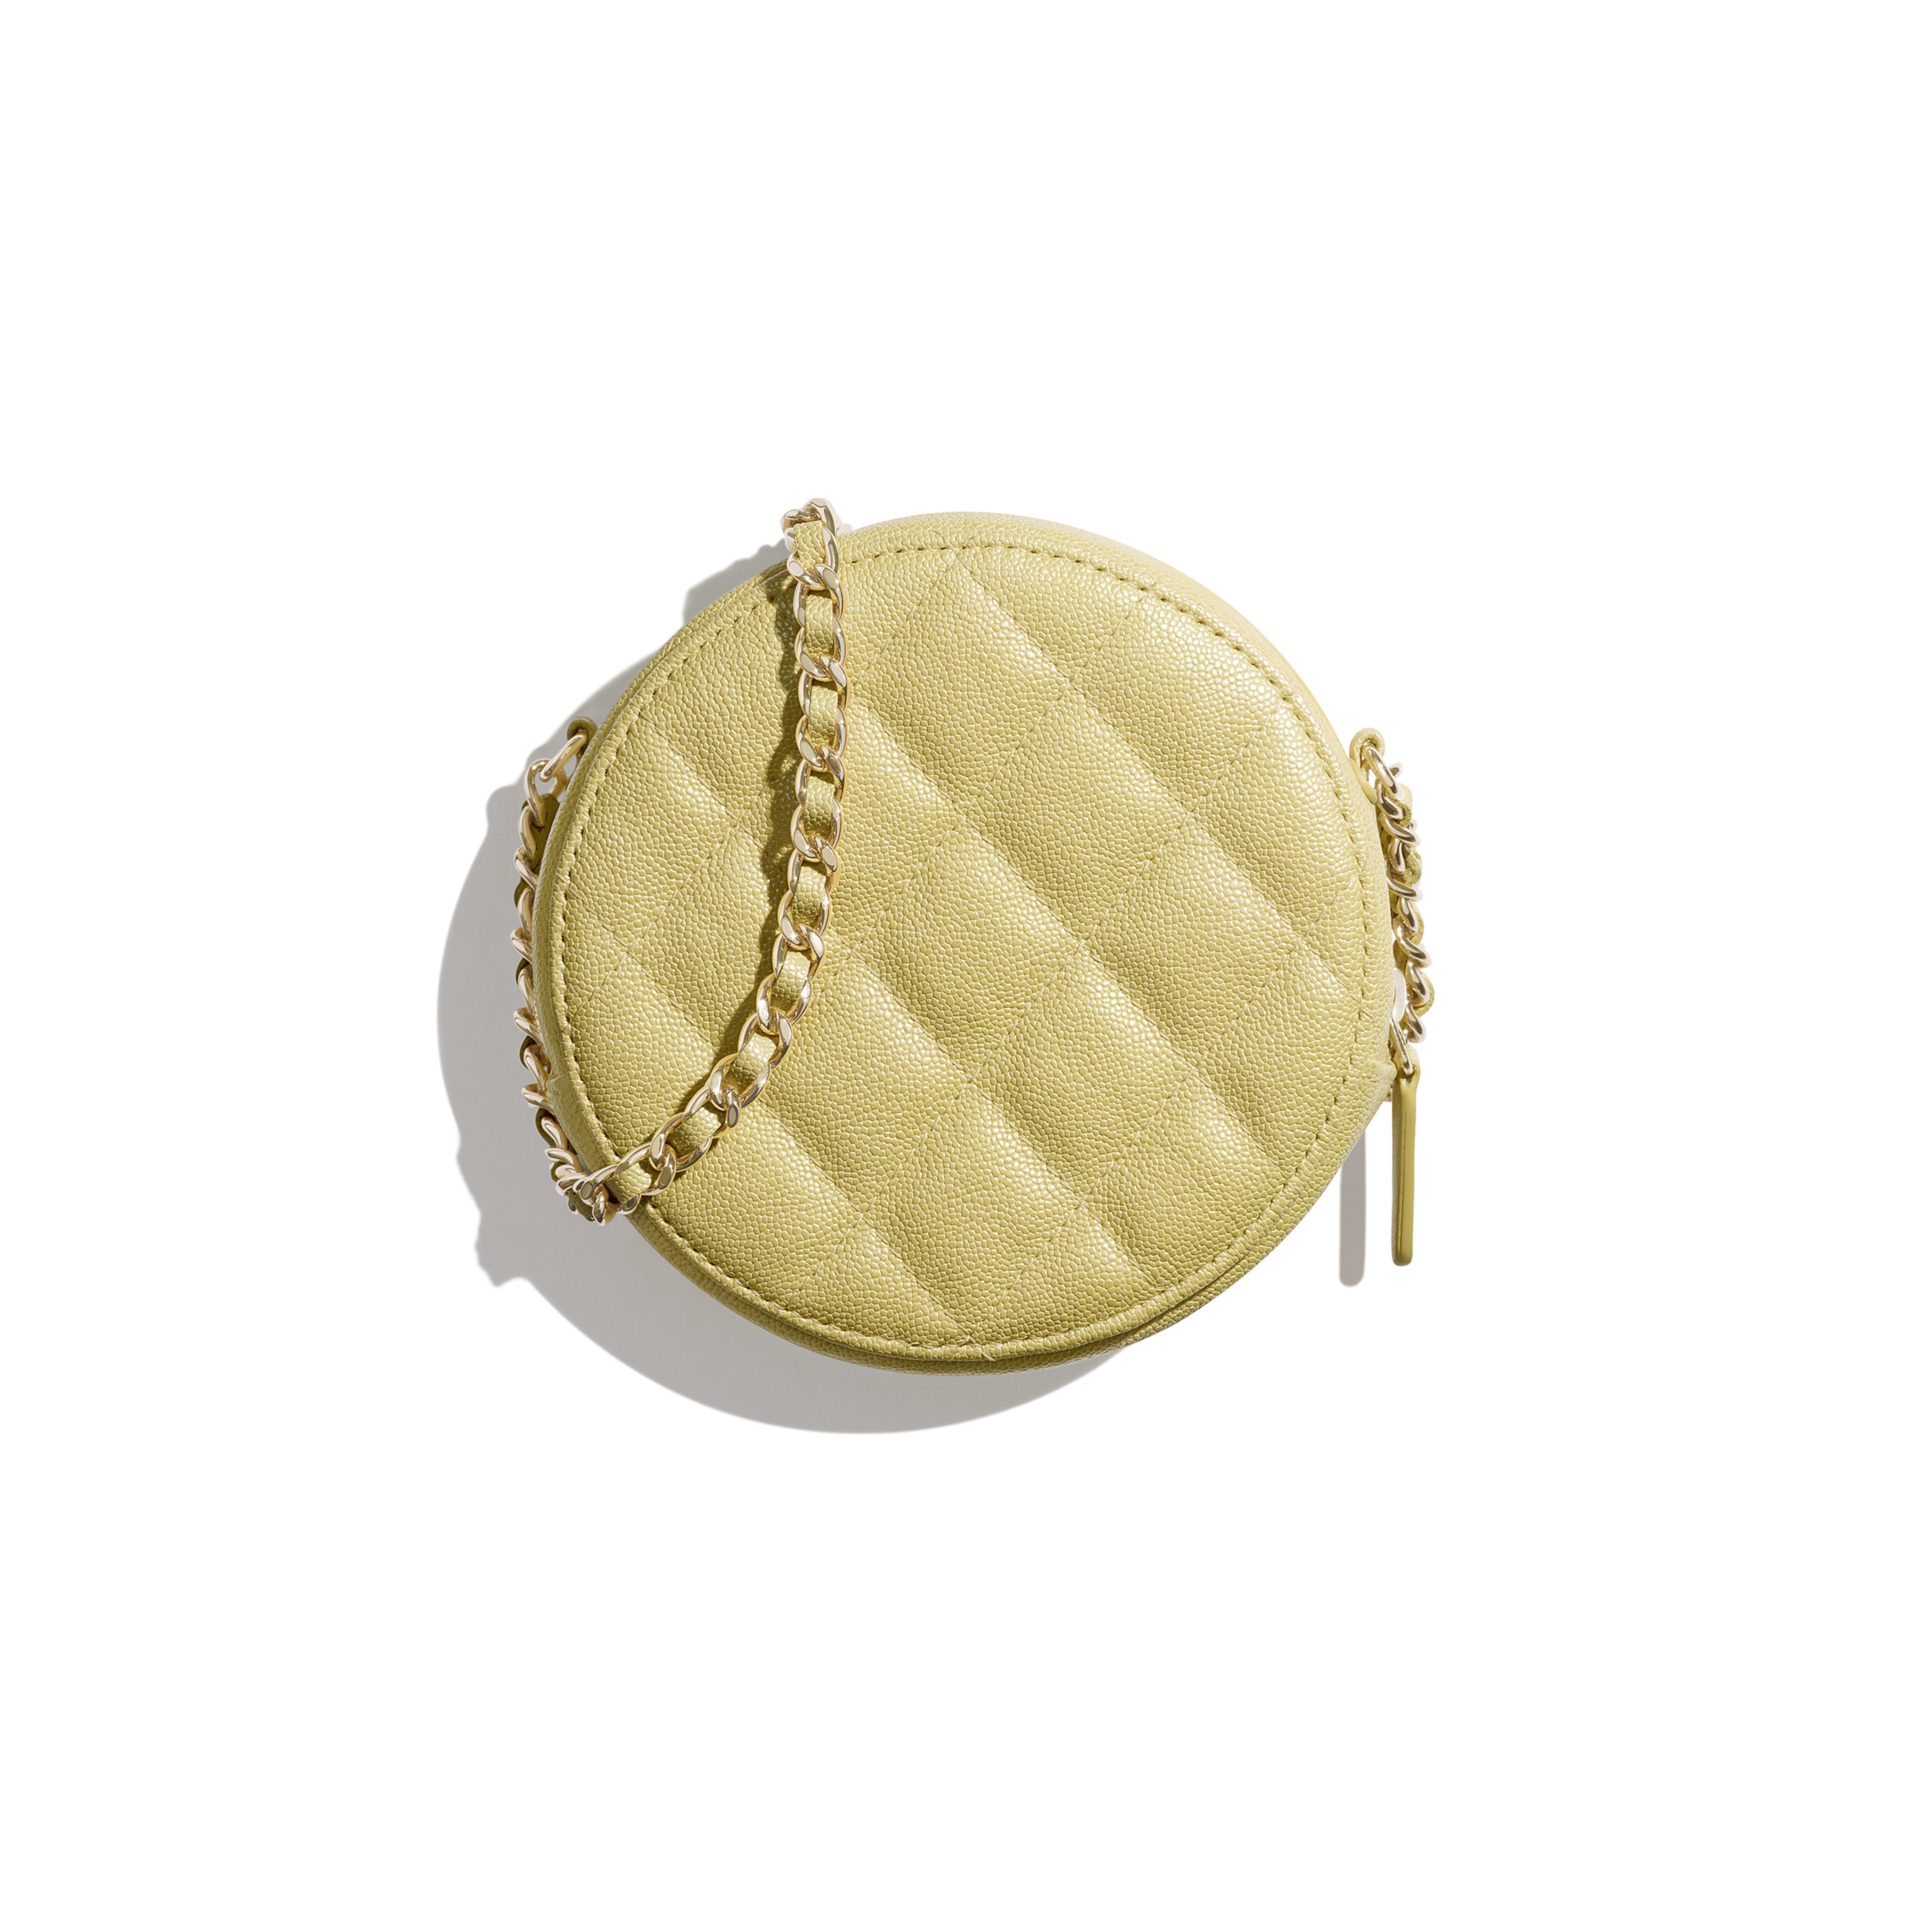 Classic Clutch with Chain - Yellow - Iridescent Grained Calfskin & Gold-Tone Metal - Alternative view - see full sized version